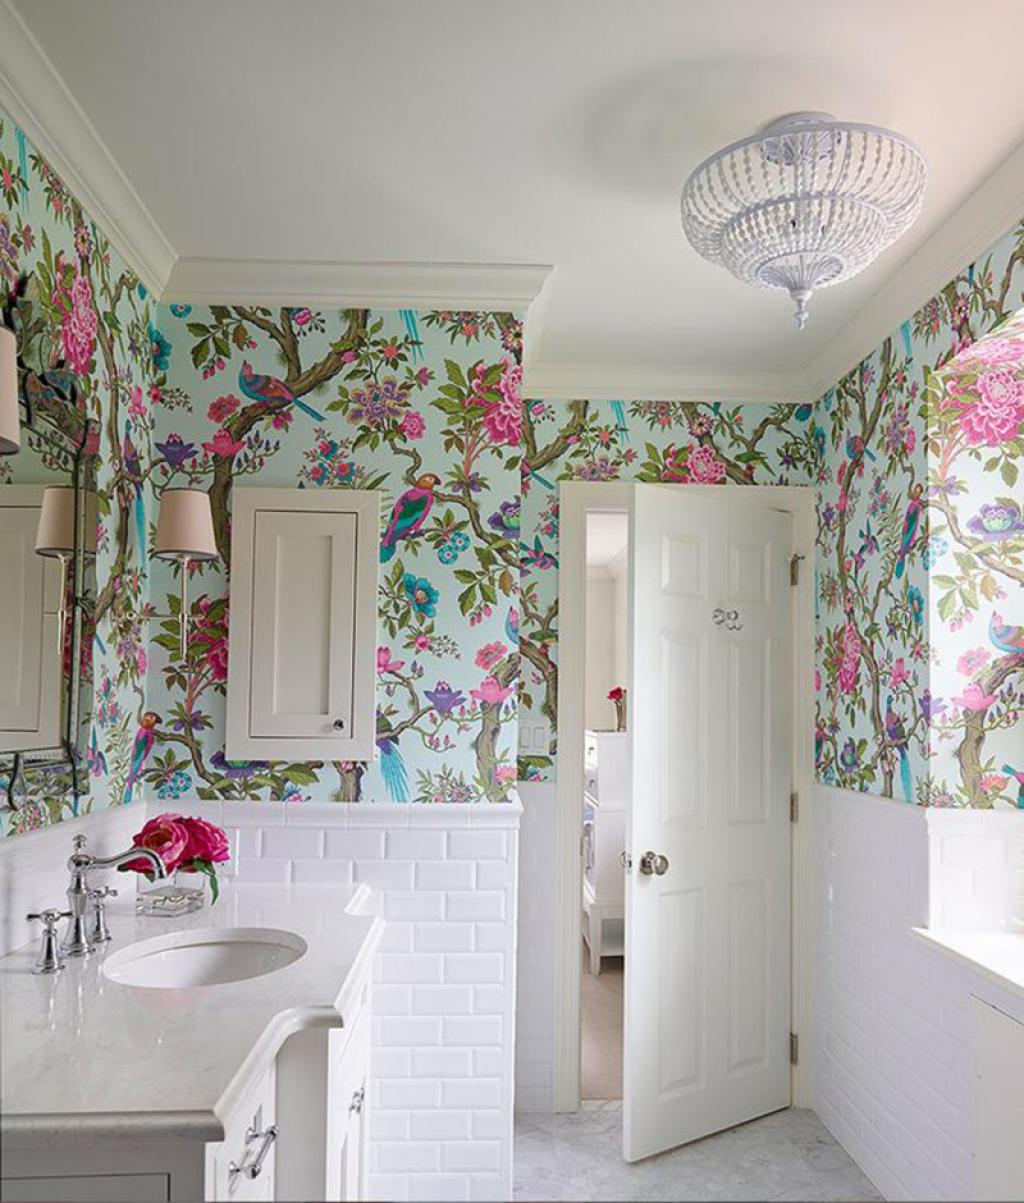 floral royal bathroom wallpaper ideas on small white modern bathroom home inspiring. Black Bedroom Furniture Sets. Home Design Ideas